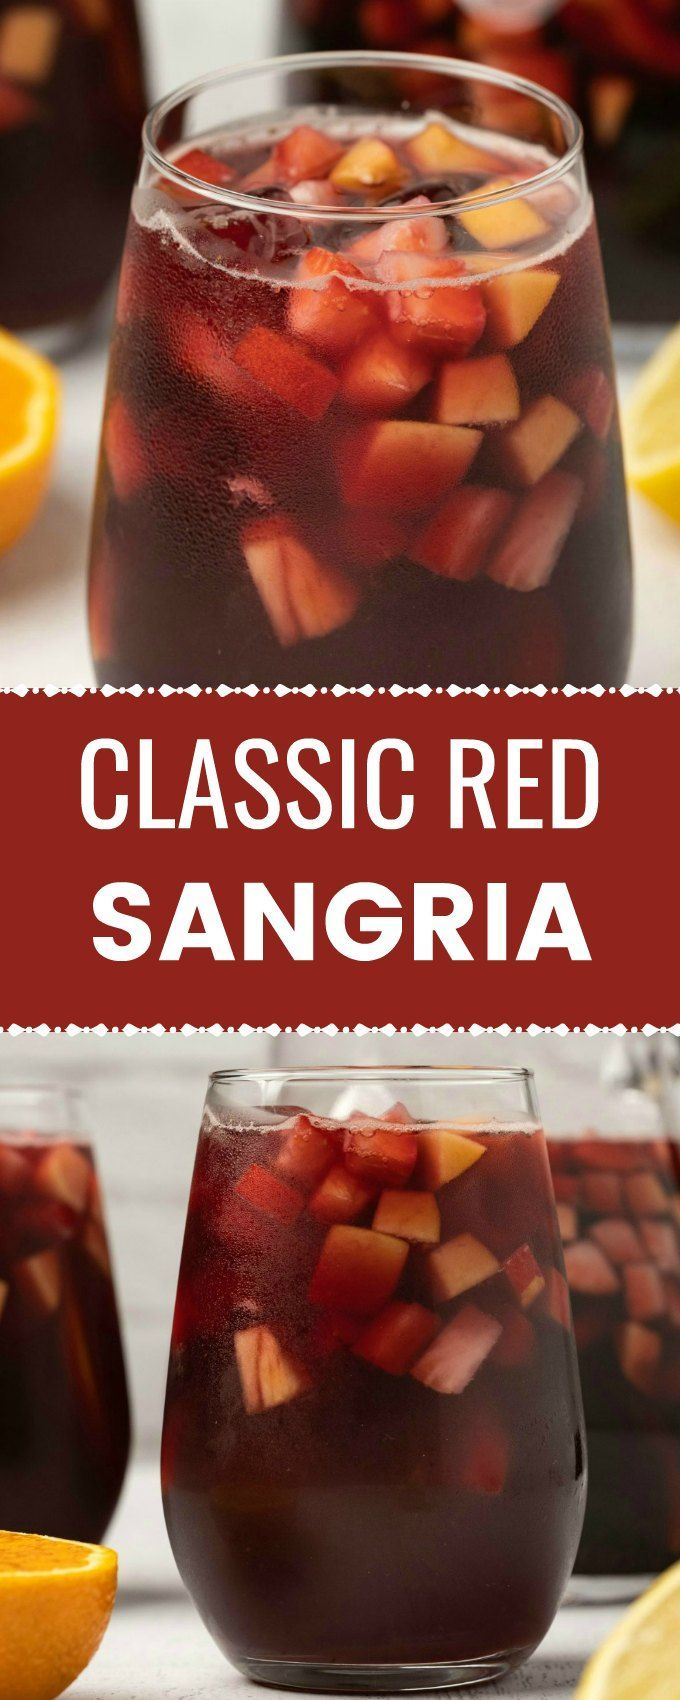 The Best Red Sangria In 2020 Red Sangria Recipes Sangria Recipes Easy Sangria Recipes